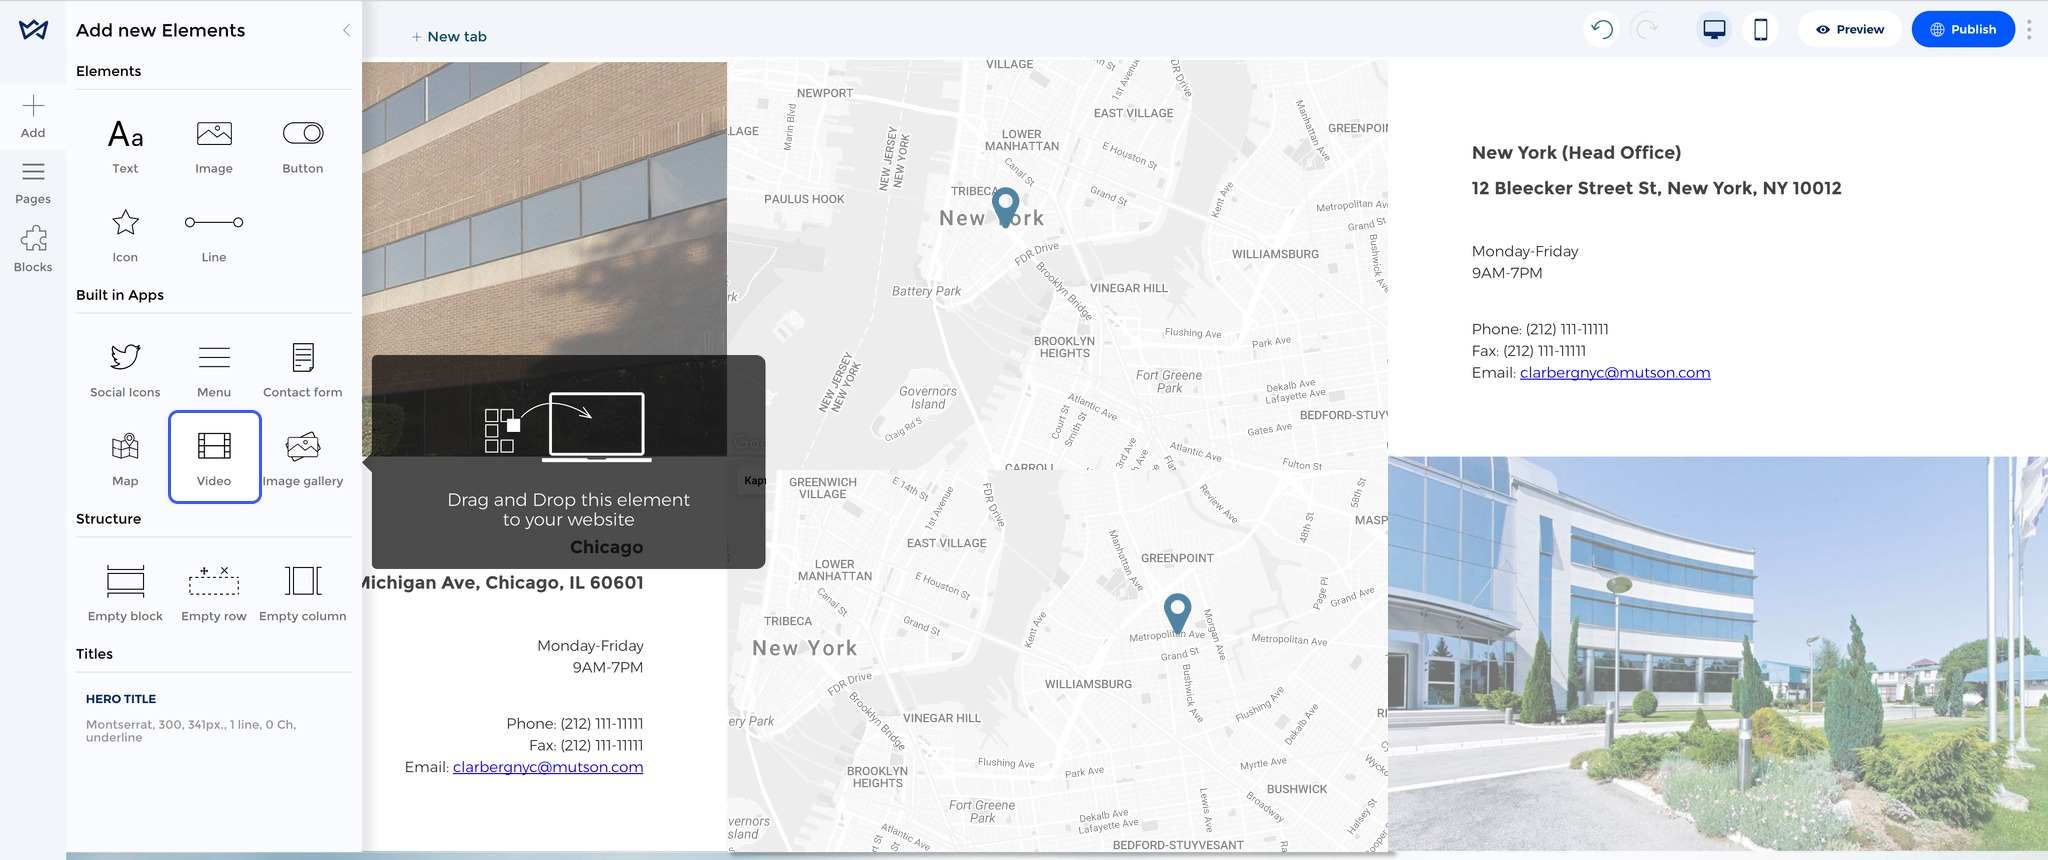 How to create a website step by step. Add map to website